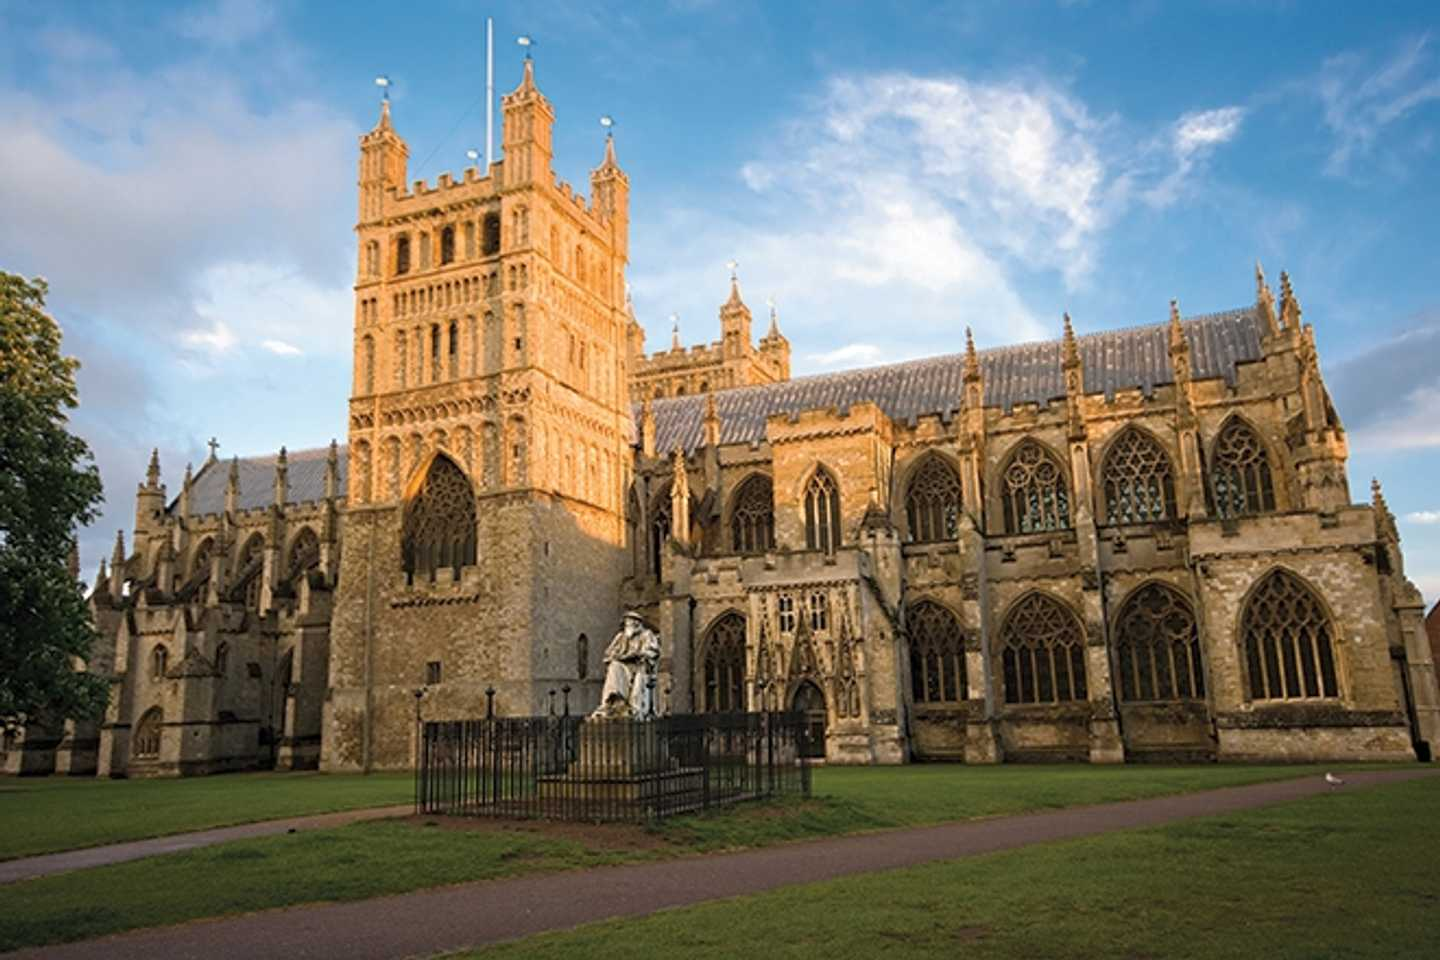 Exterior of Exeter Cathedral